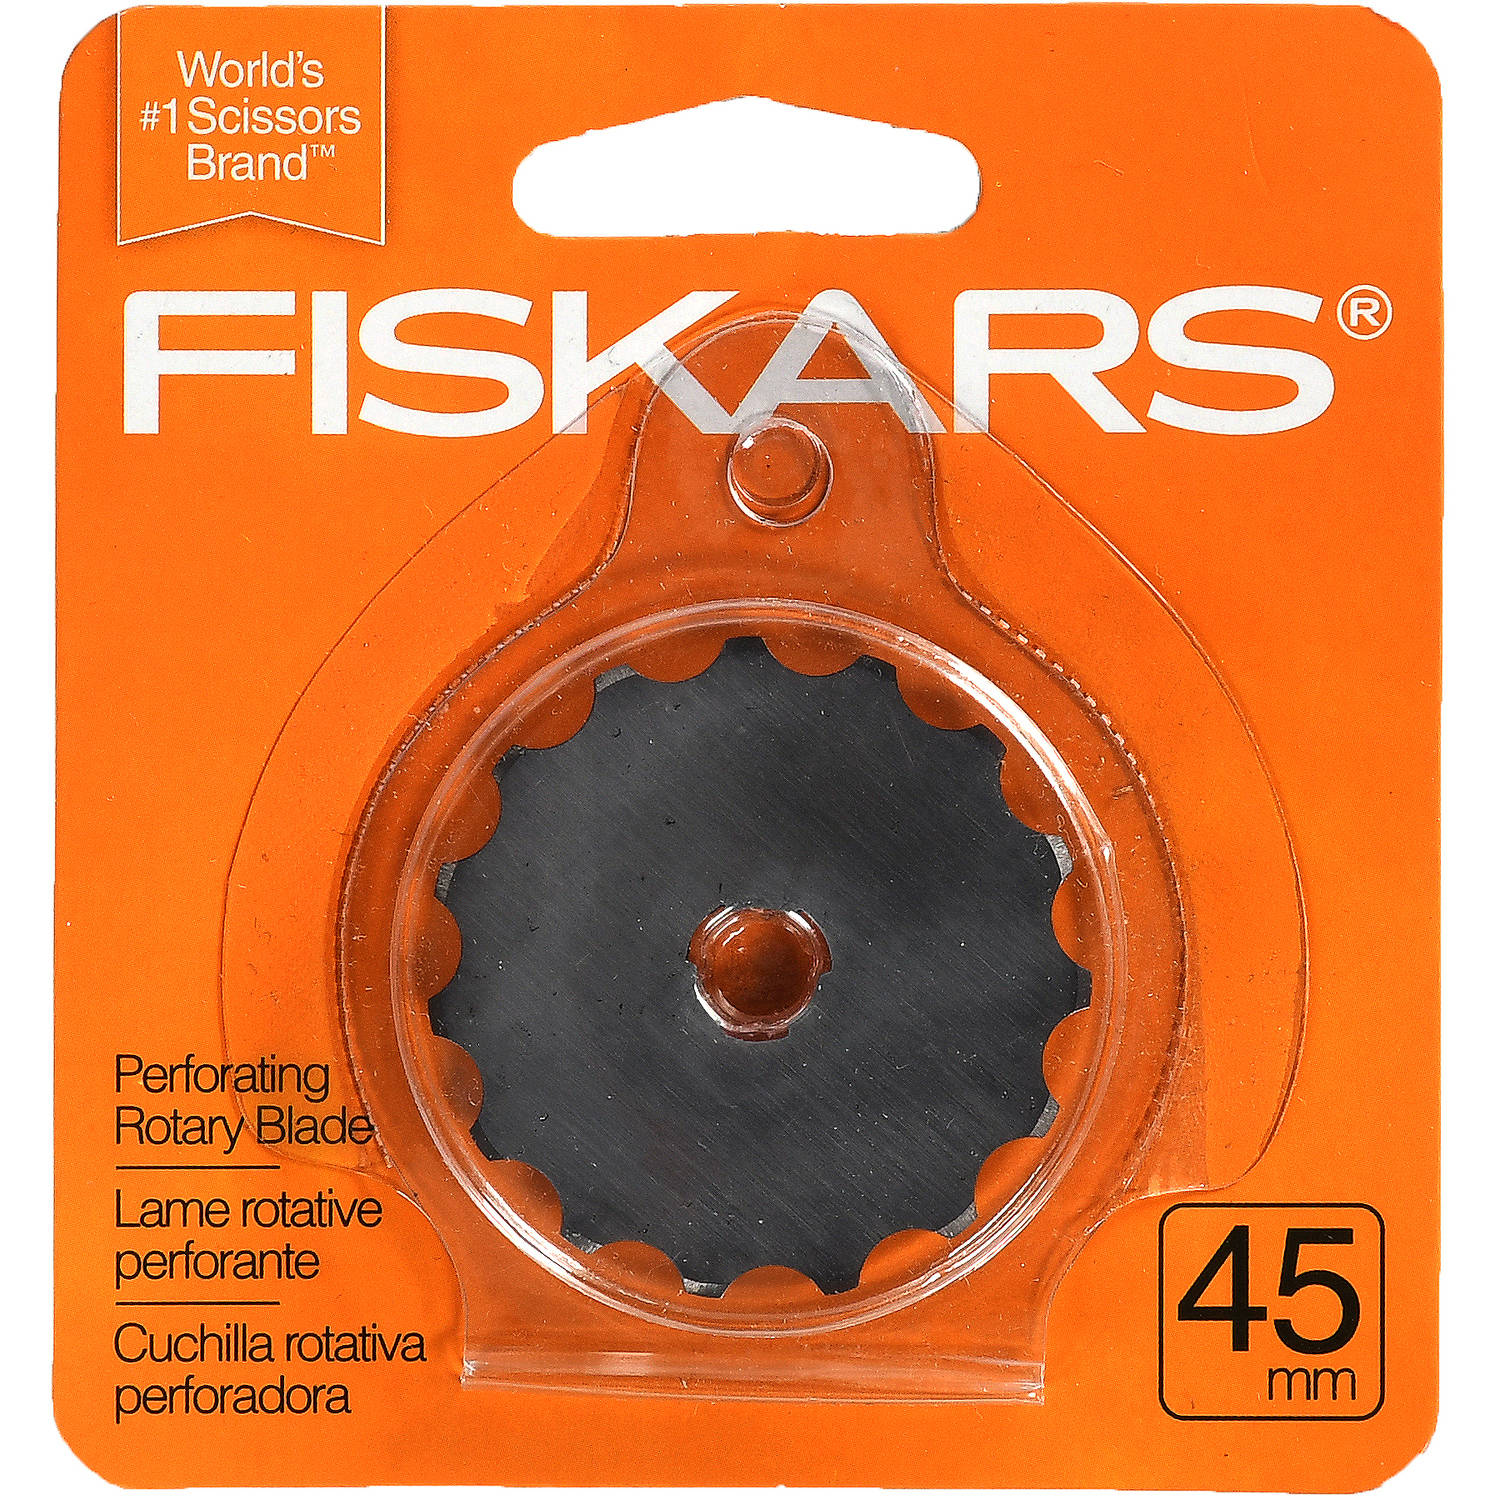 Fiskars Perforating Rotary Blade (45 mm)